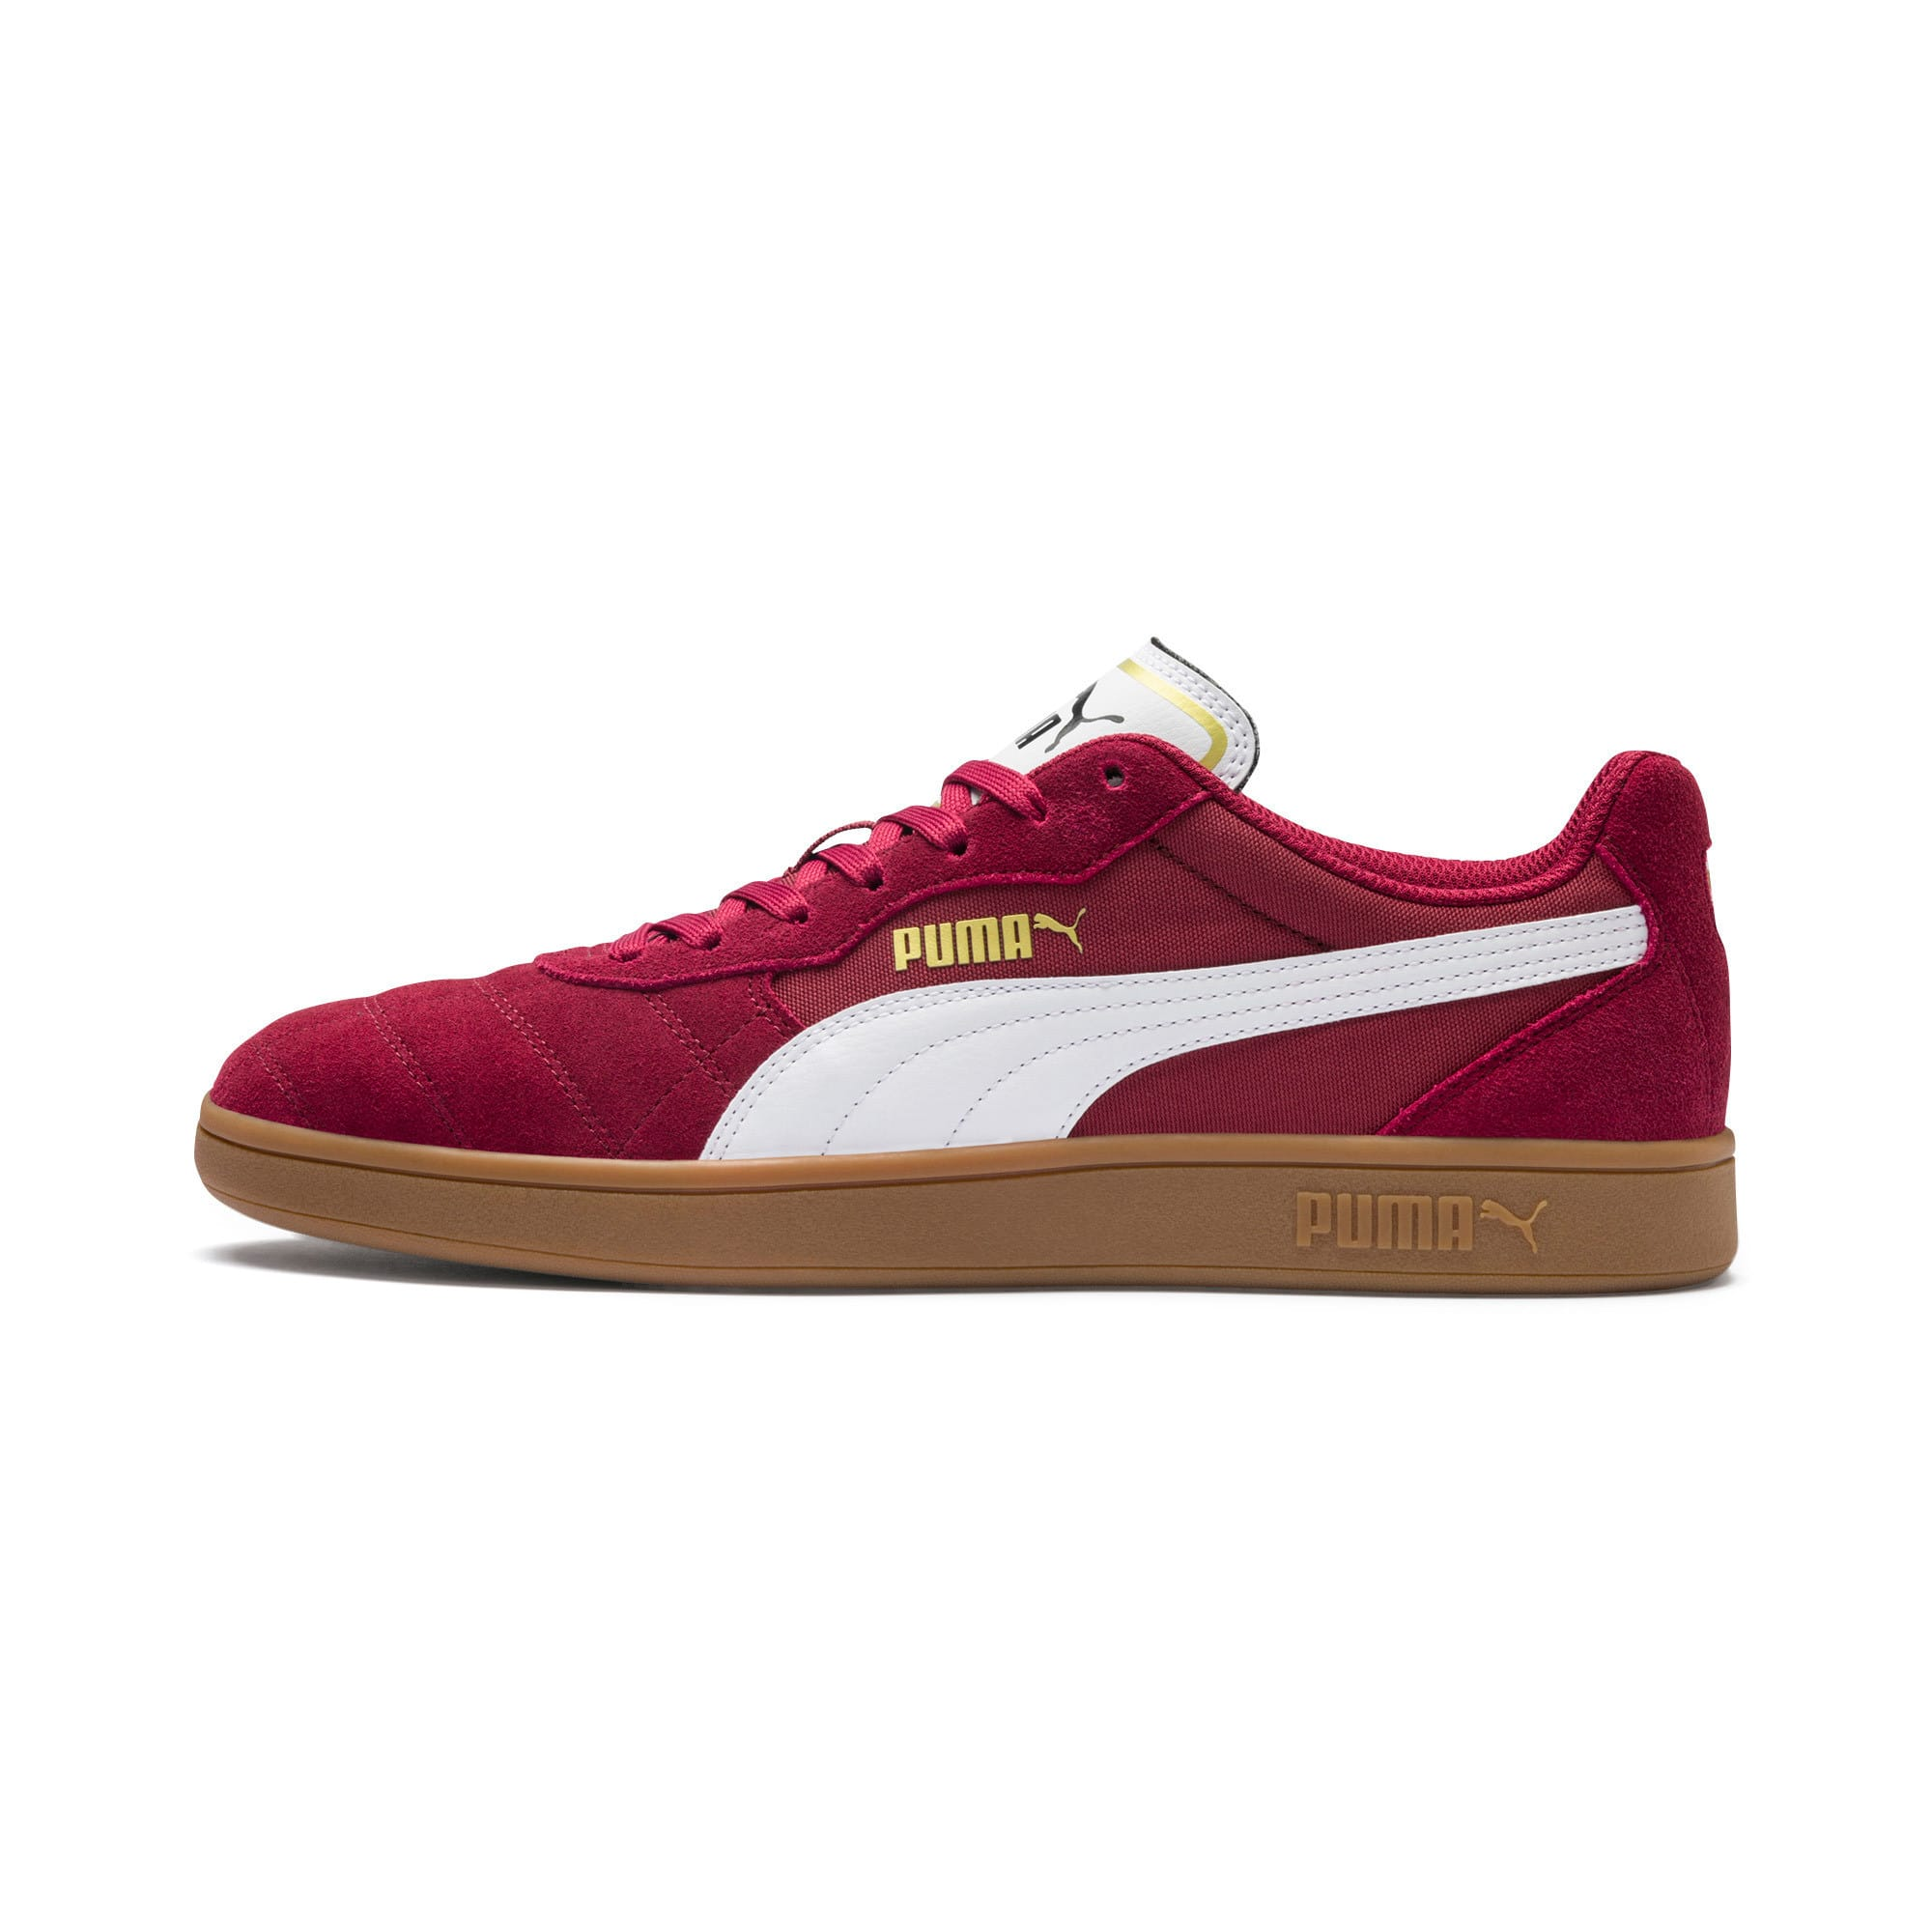 Thumbnail 1 of Astro Kick Sneakers, Cordovan-Puma White, medium